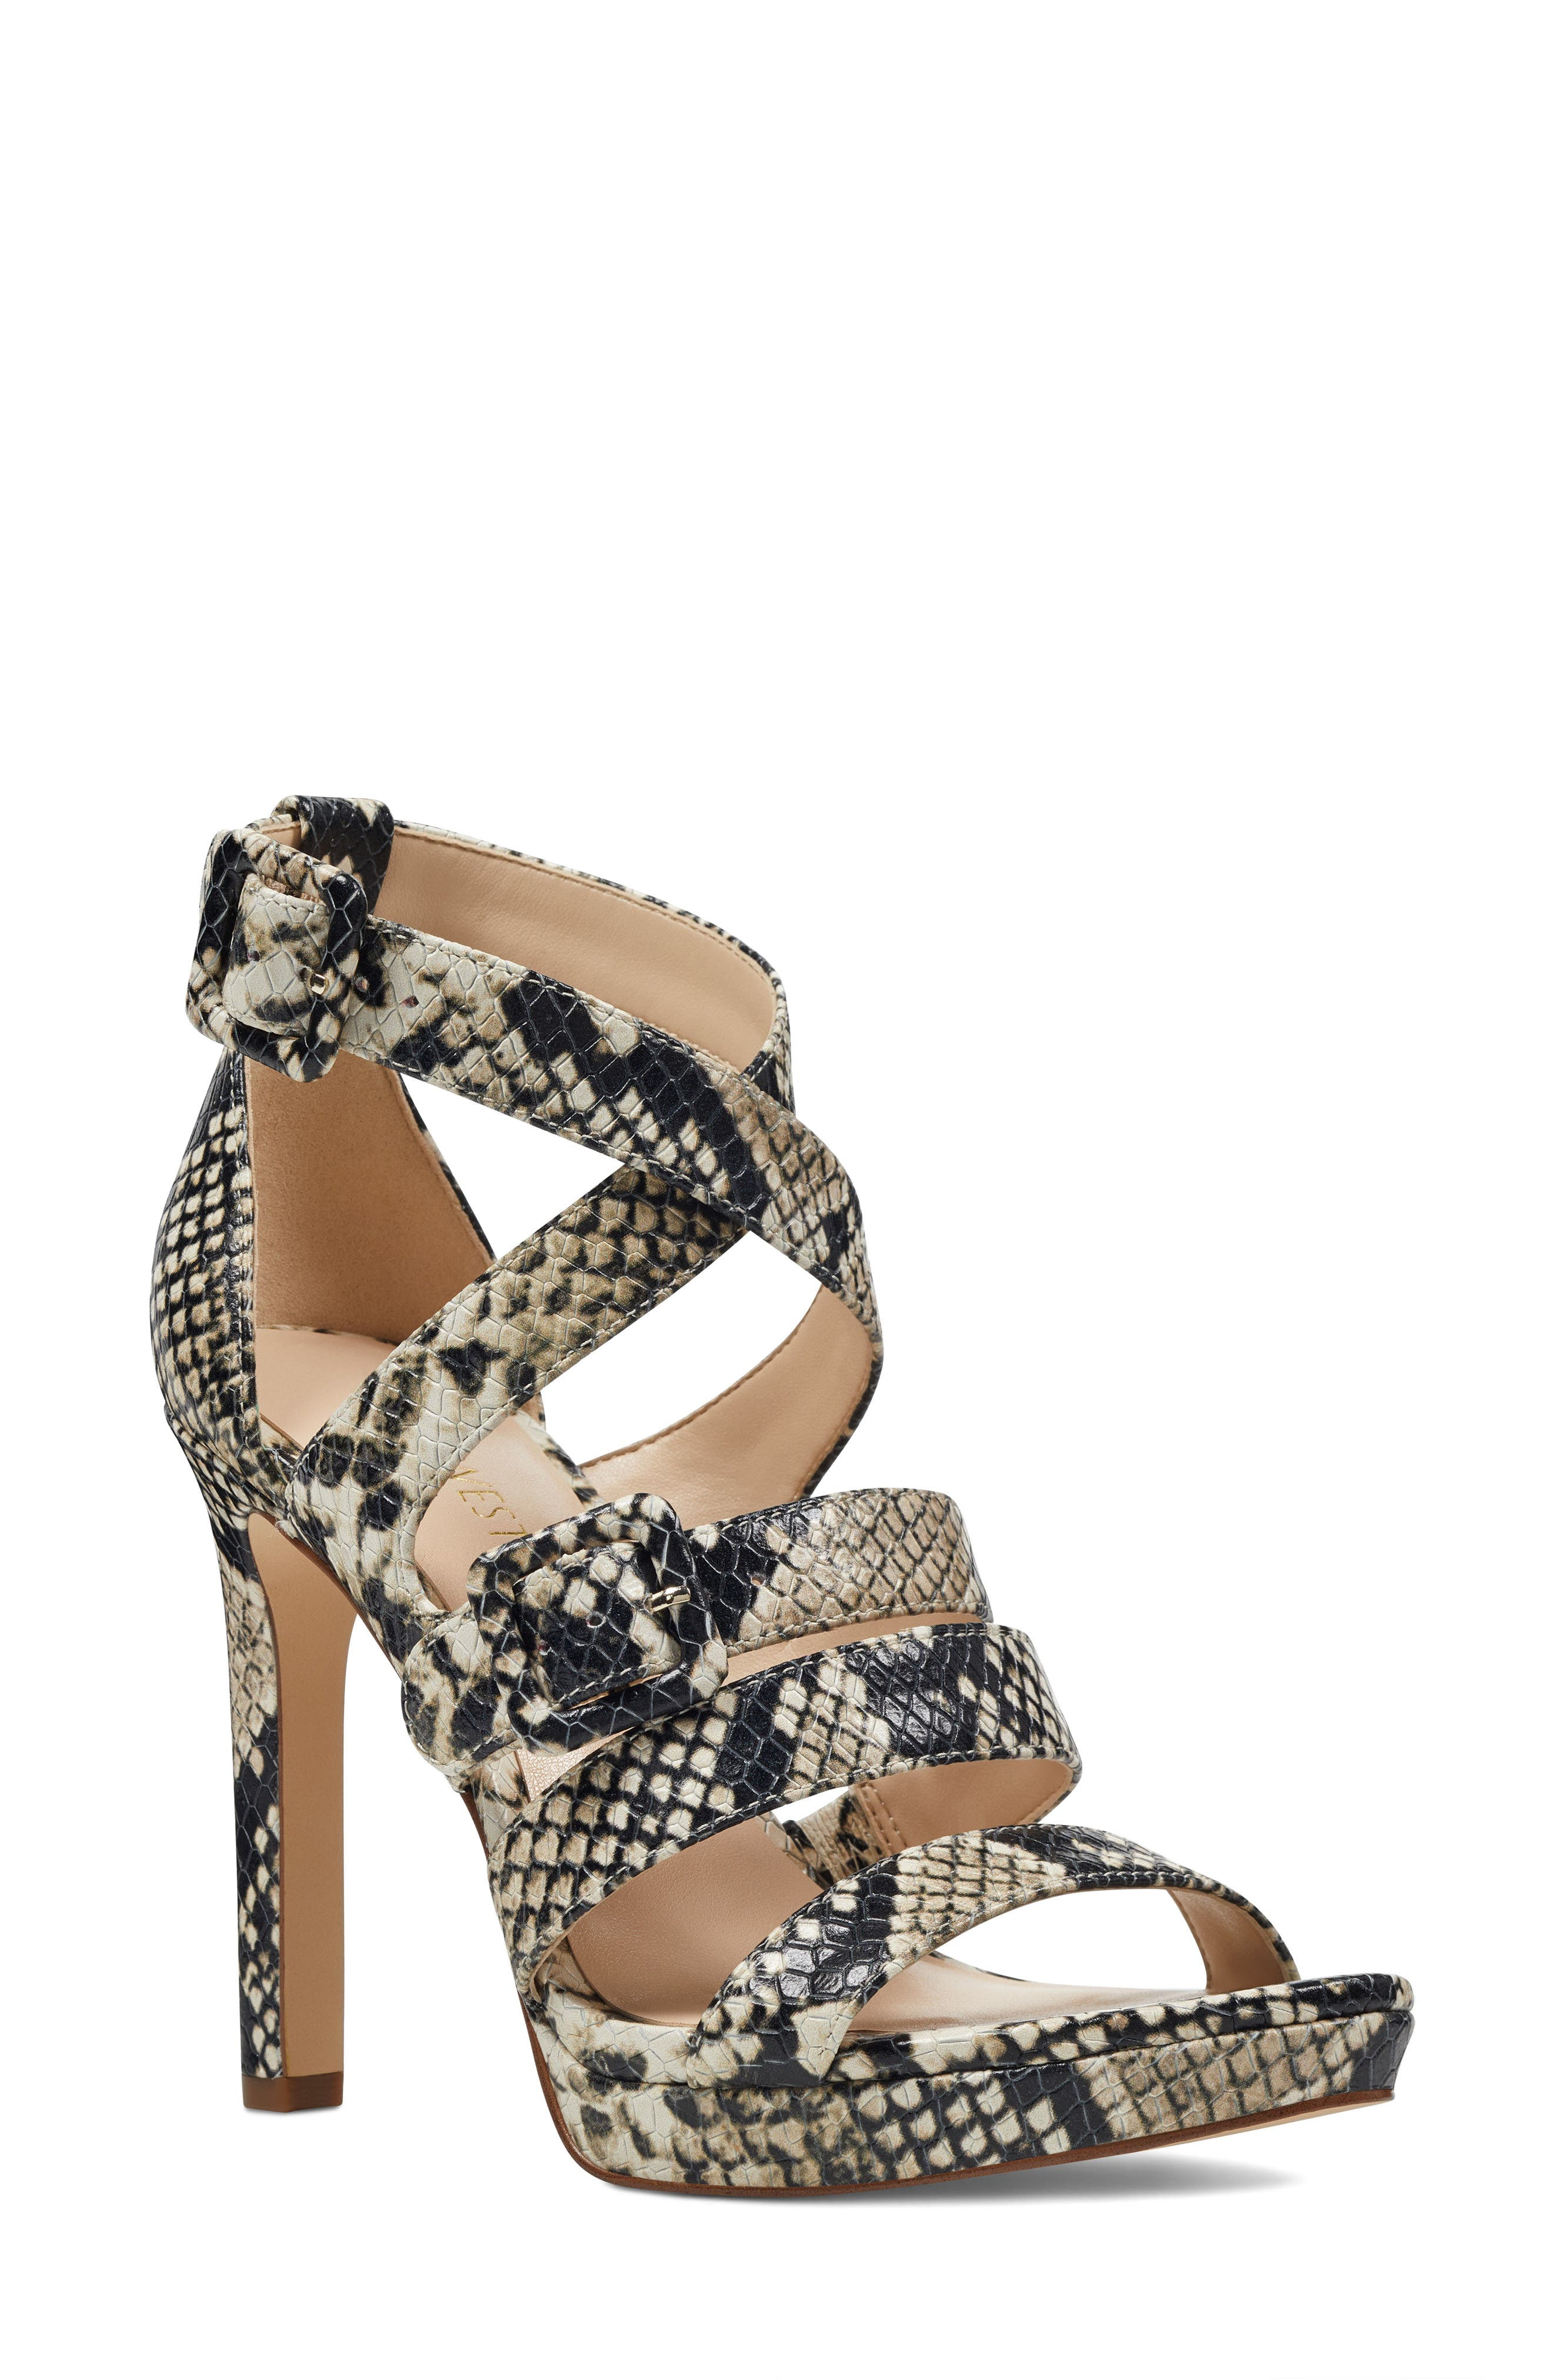 Tarykah Strappy Sandal,                             Main thumbnail 1, color,                             100